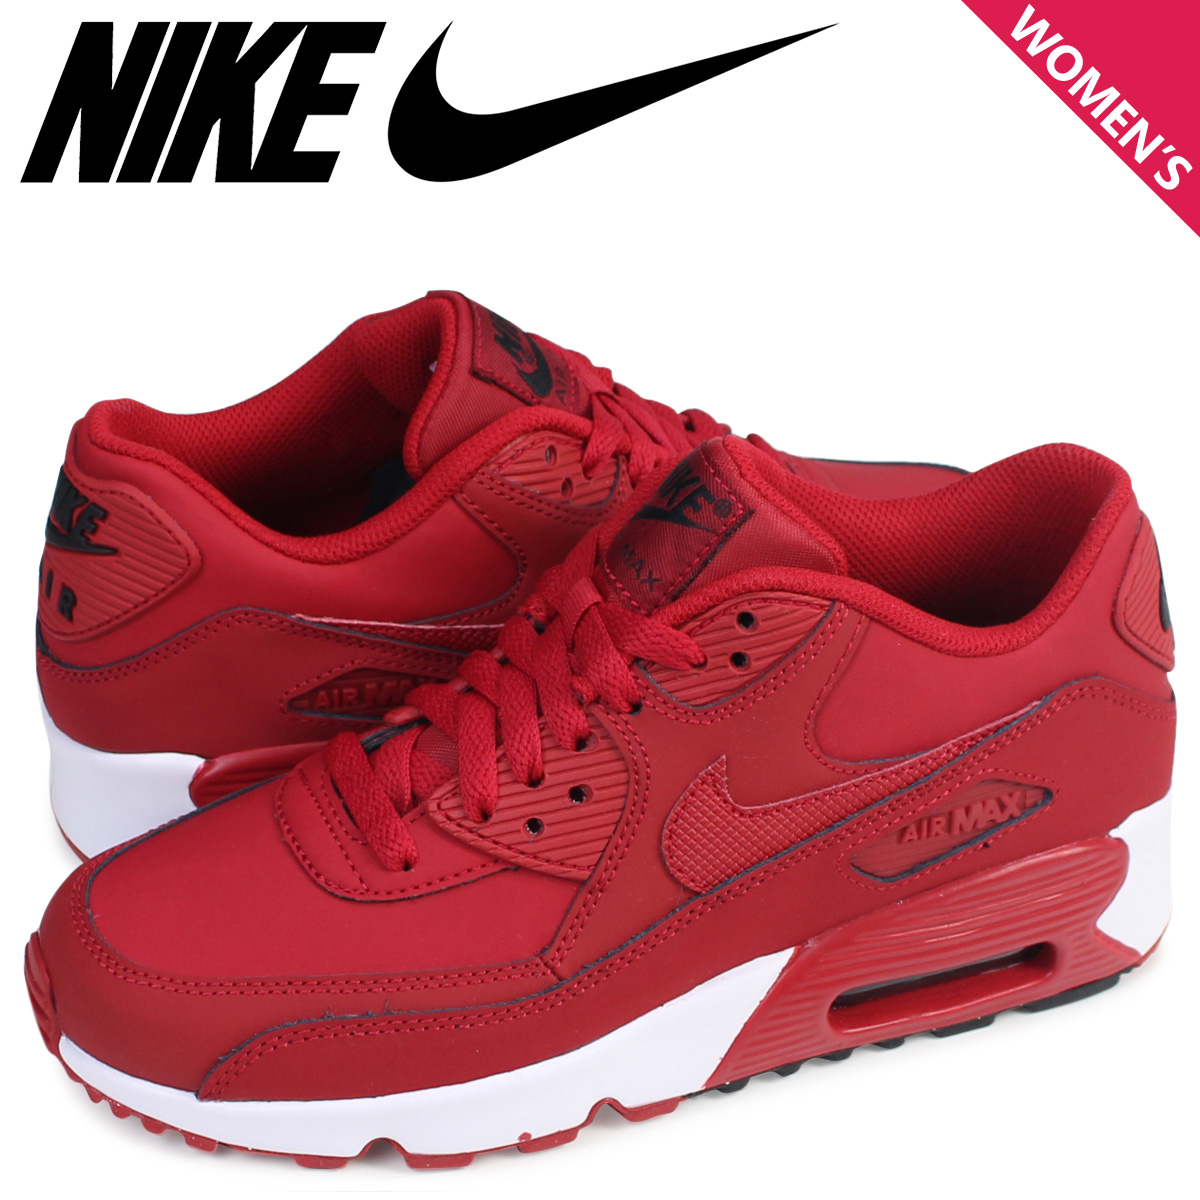 Not Just for the Gym: Reebok Classic, Nike Air Max 90